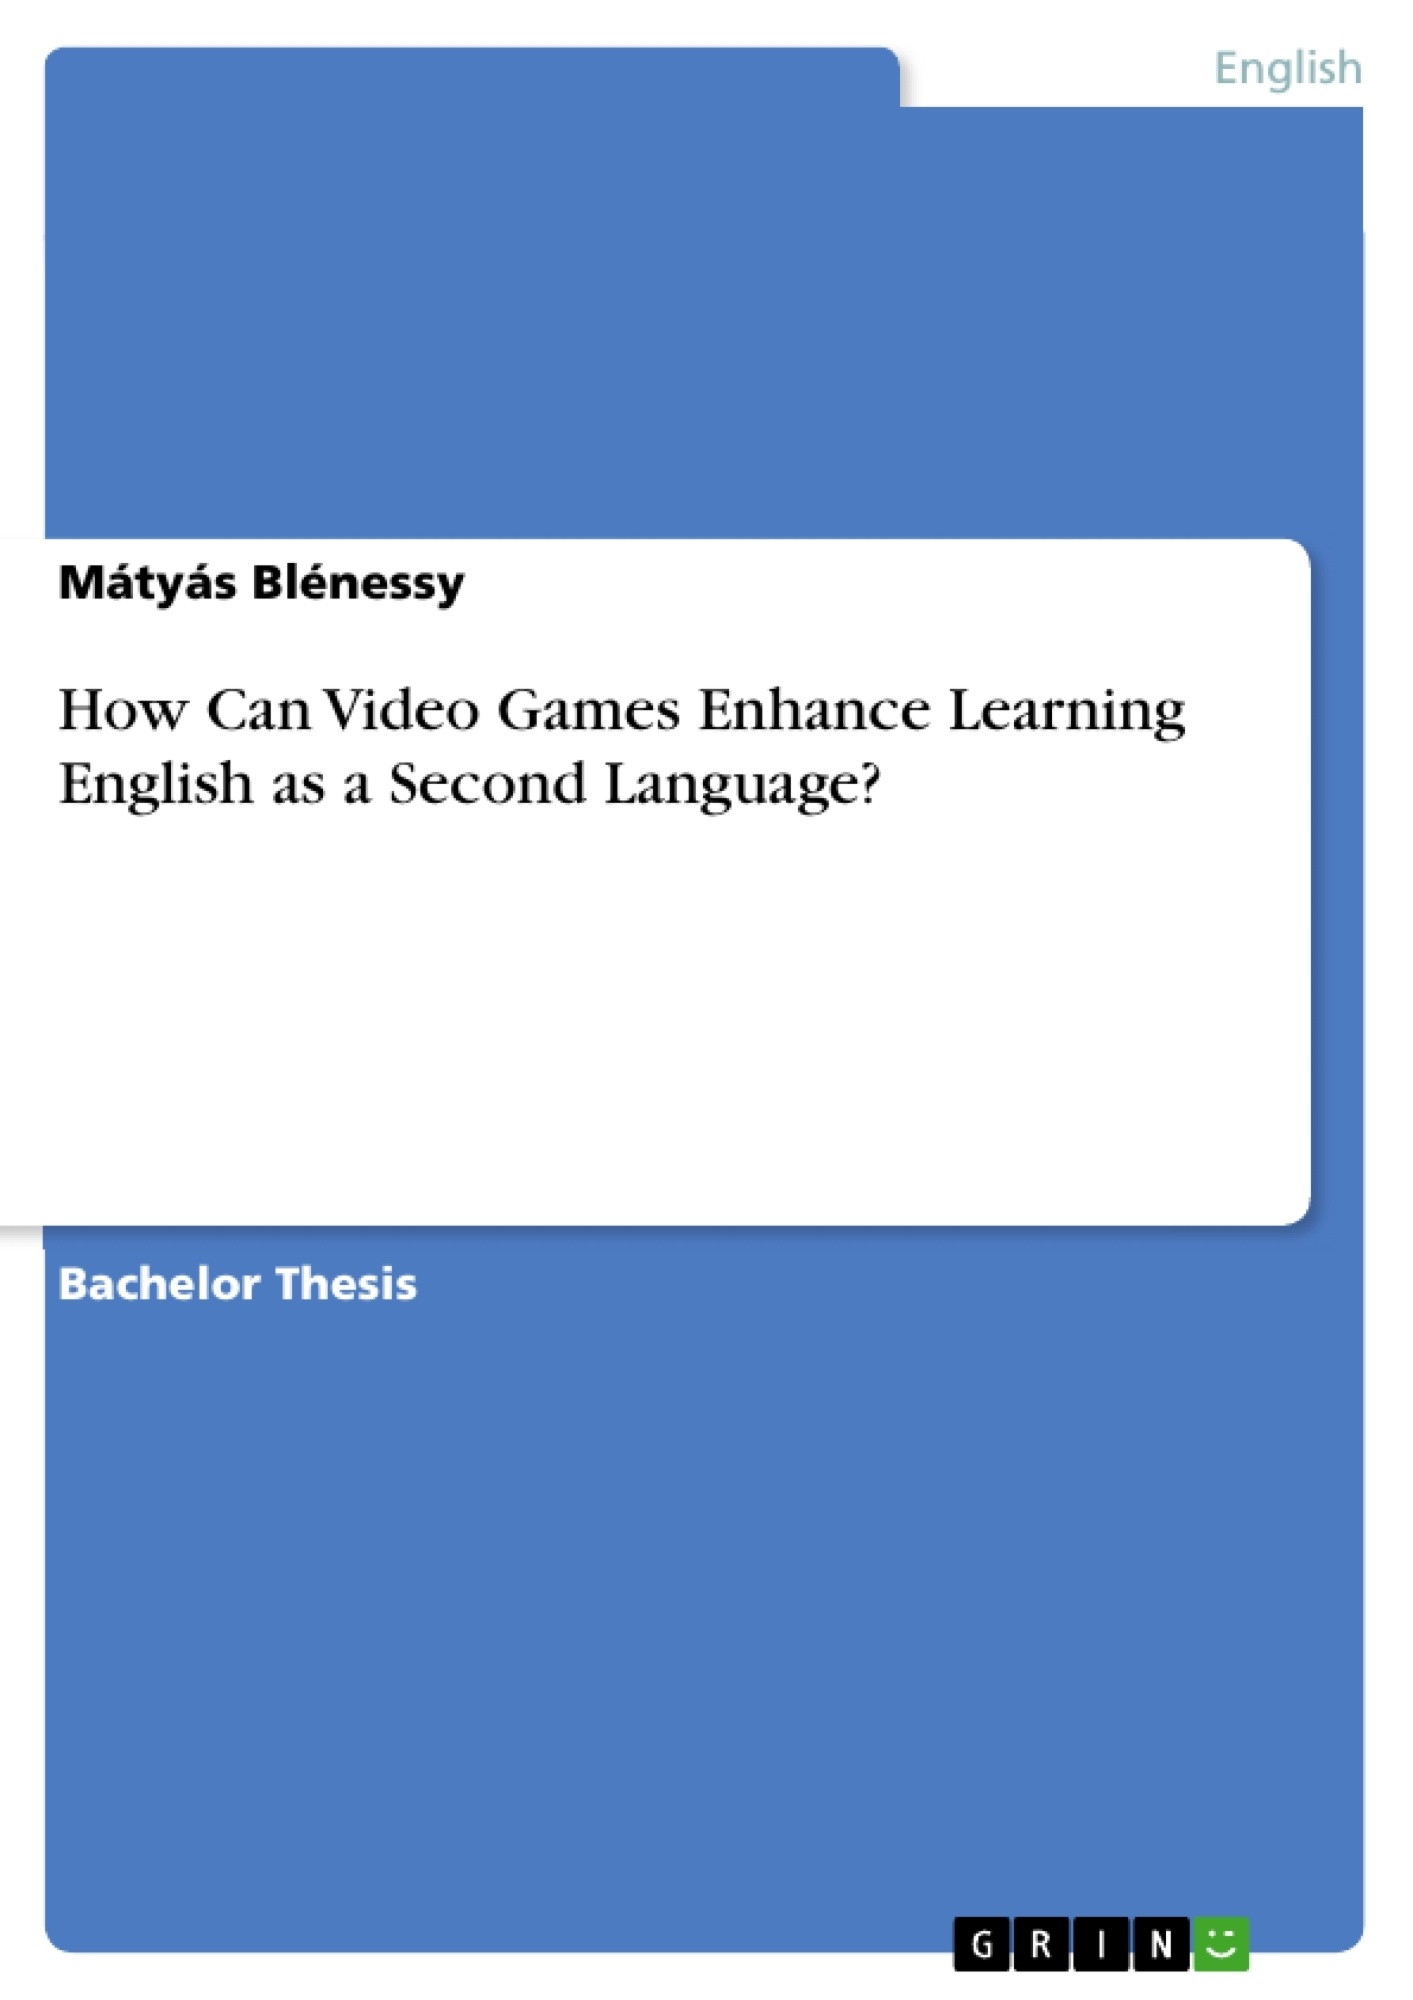 Title: How Can Video Games Enhance Learning English as a Second Language?